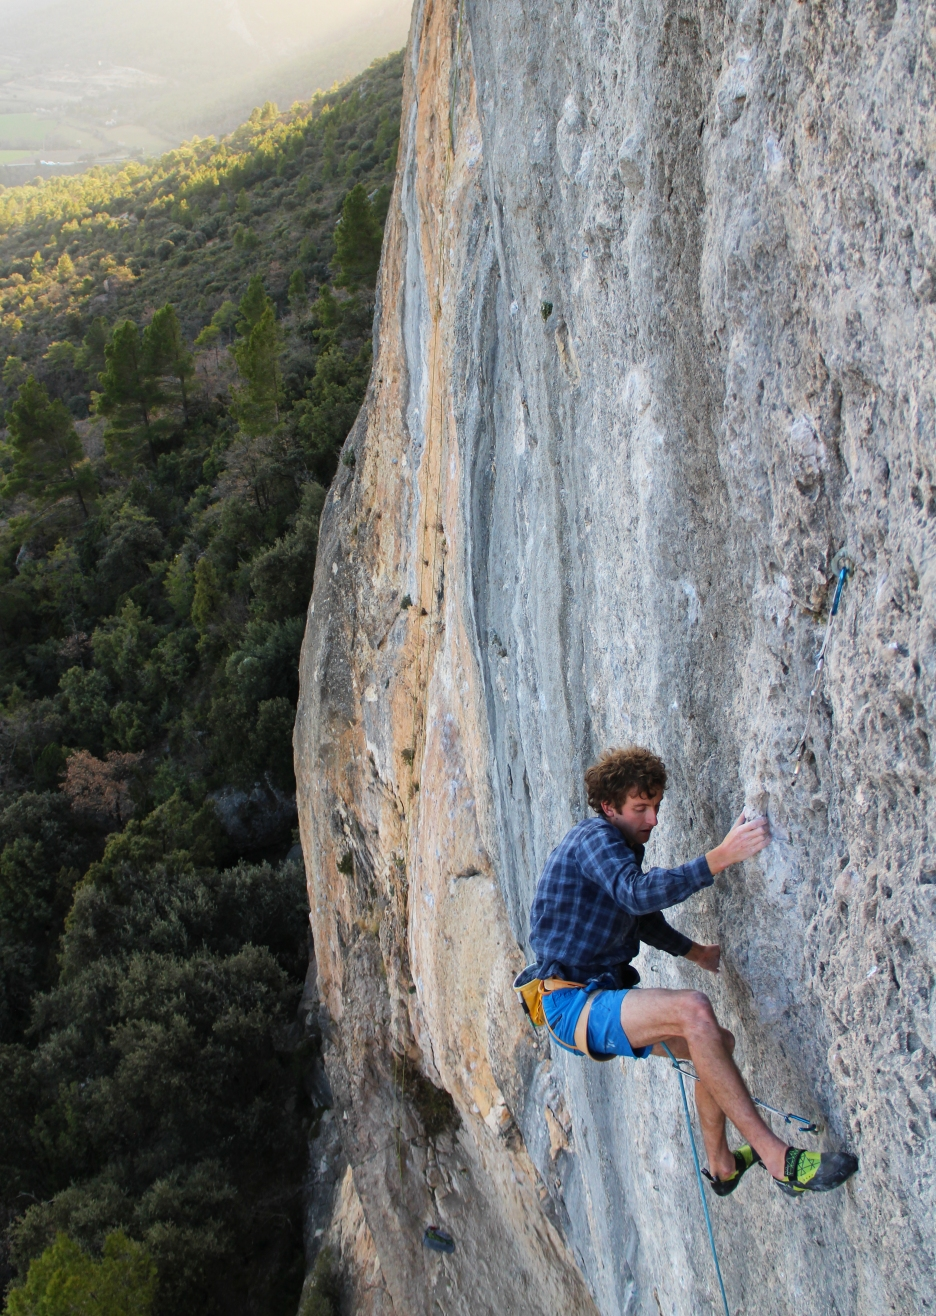 Nathan climbing China Crisis (8b+), Oliana, Spain